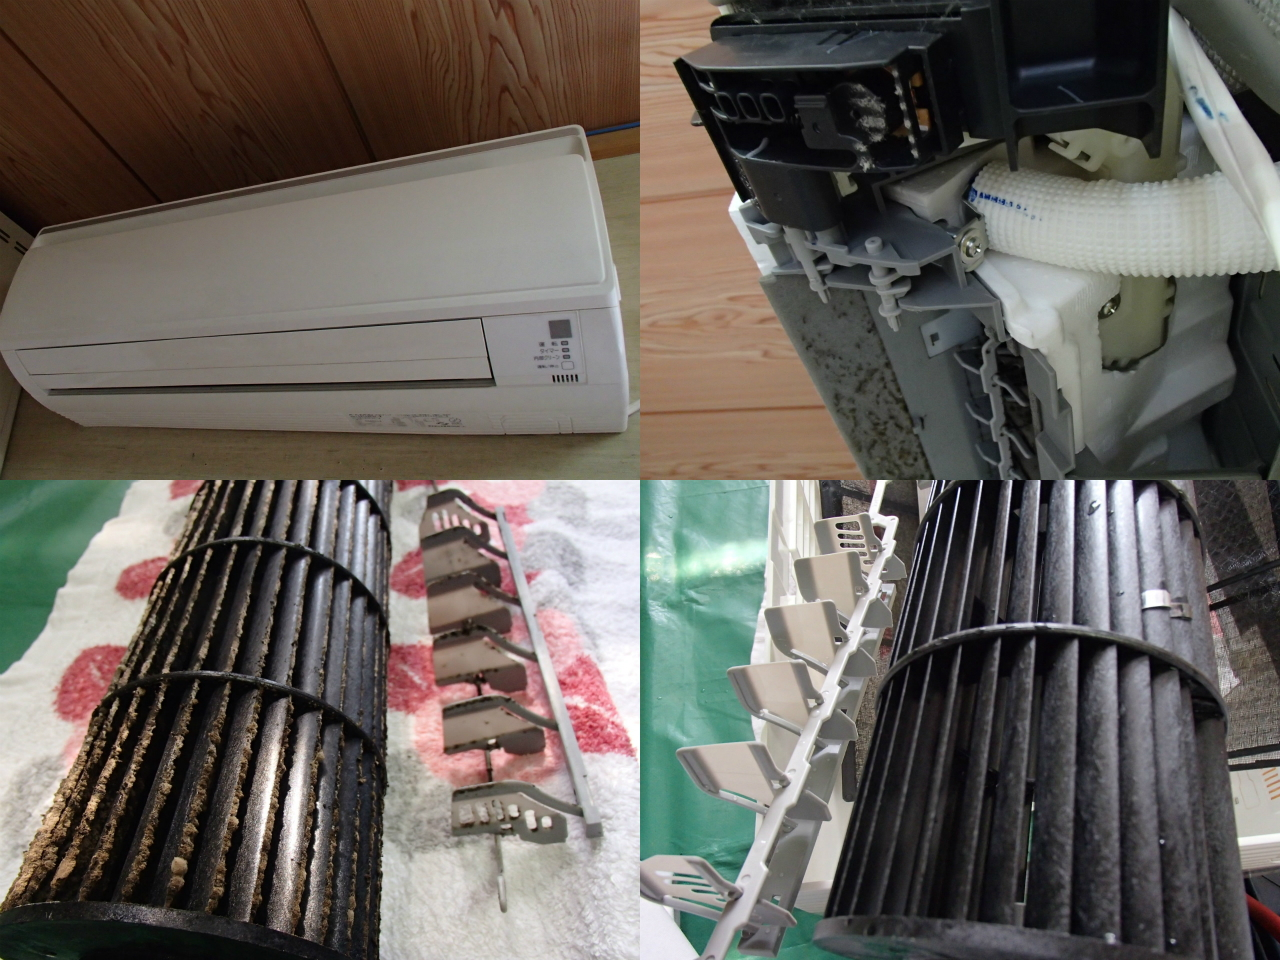 http://ajras.net/images/120905-aircon3.jpg